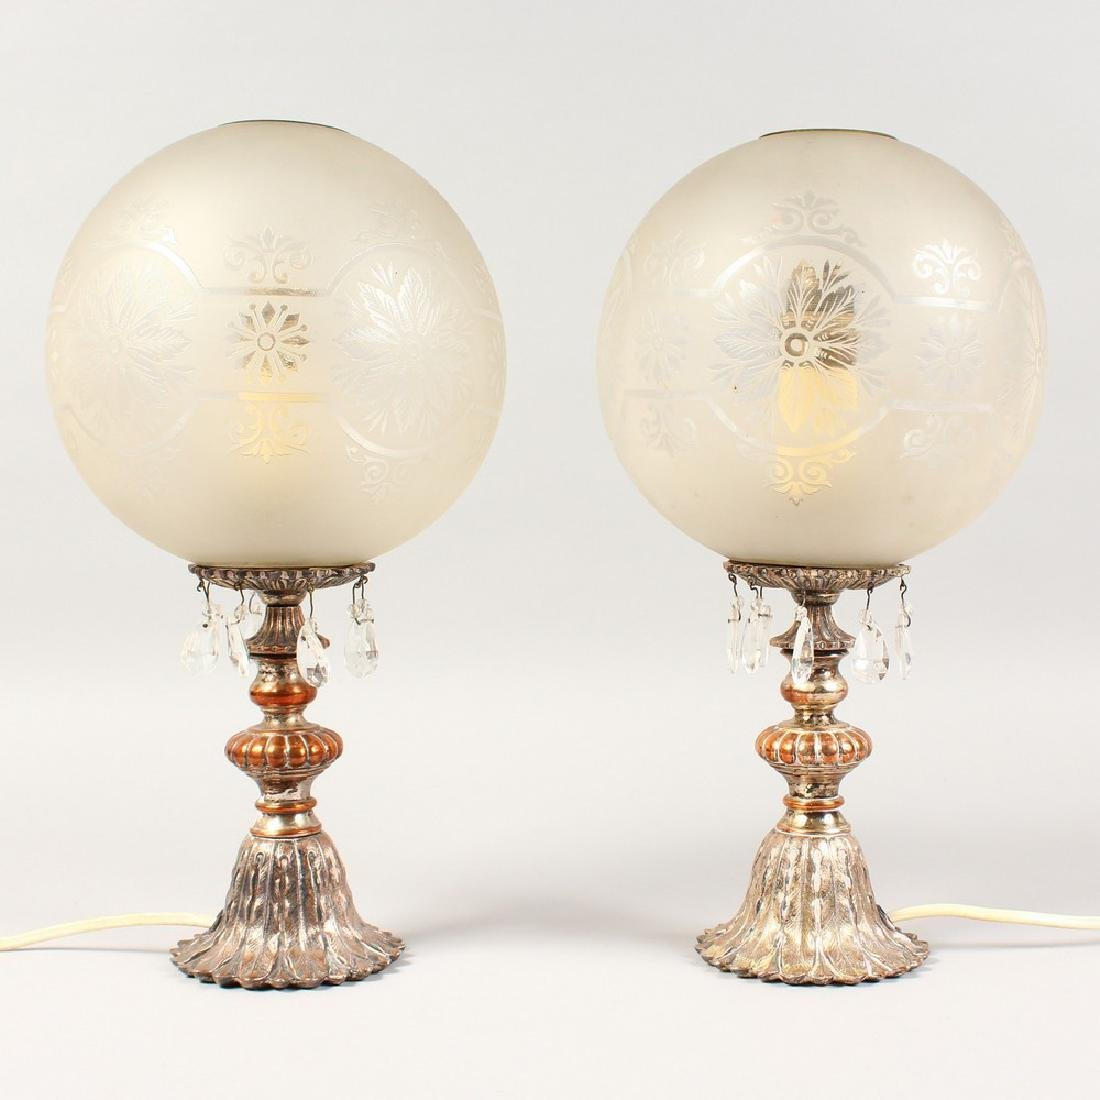 A PAIR OF METAL LAMPS with prism drops and frosted